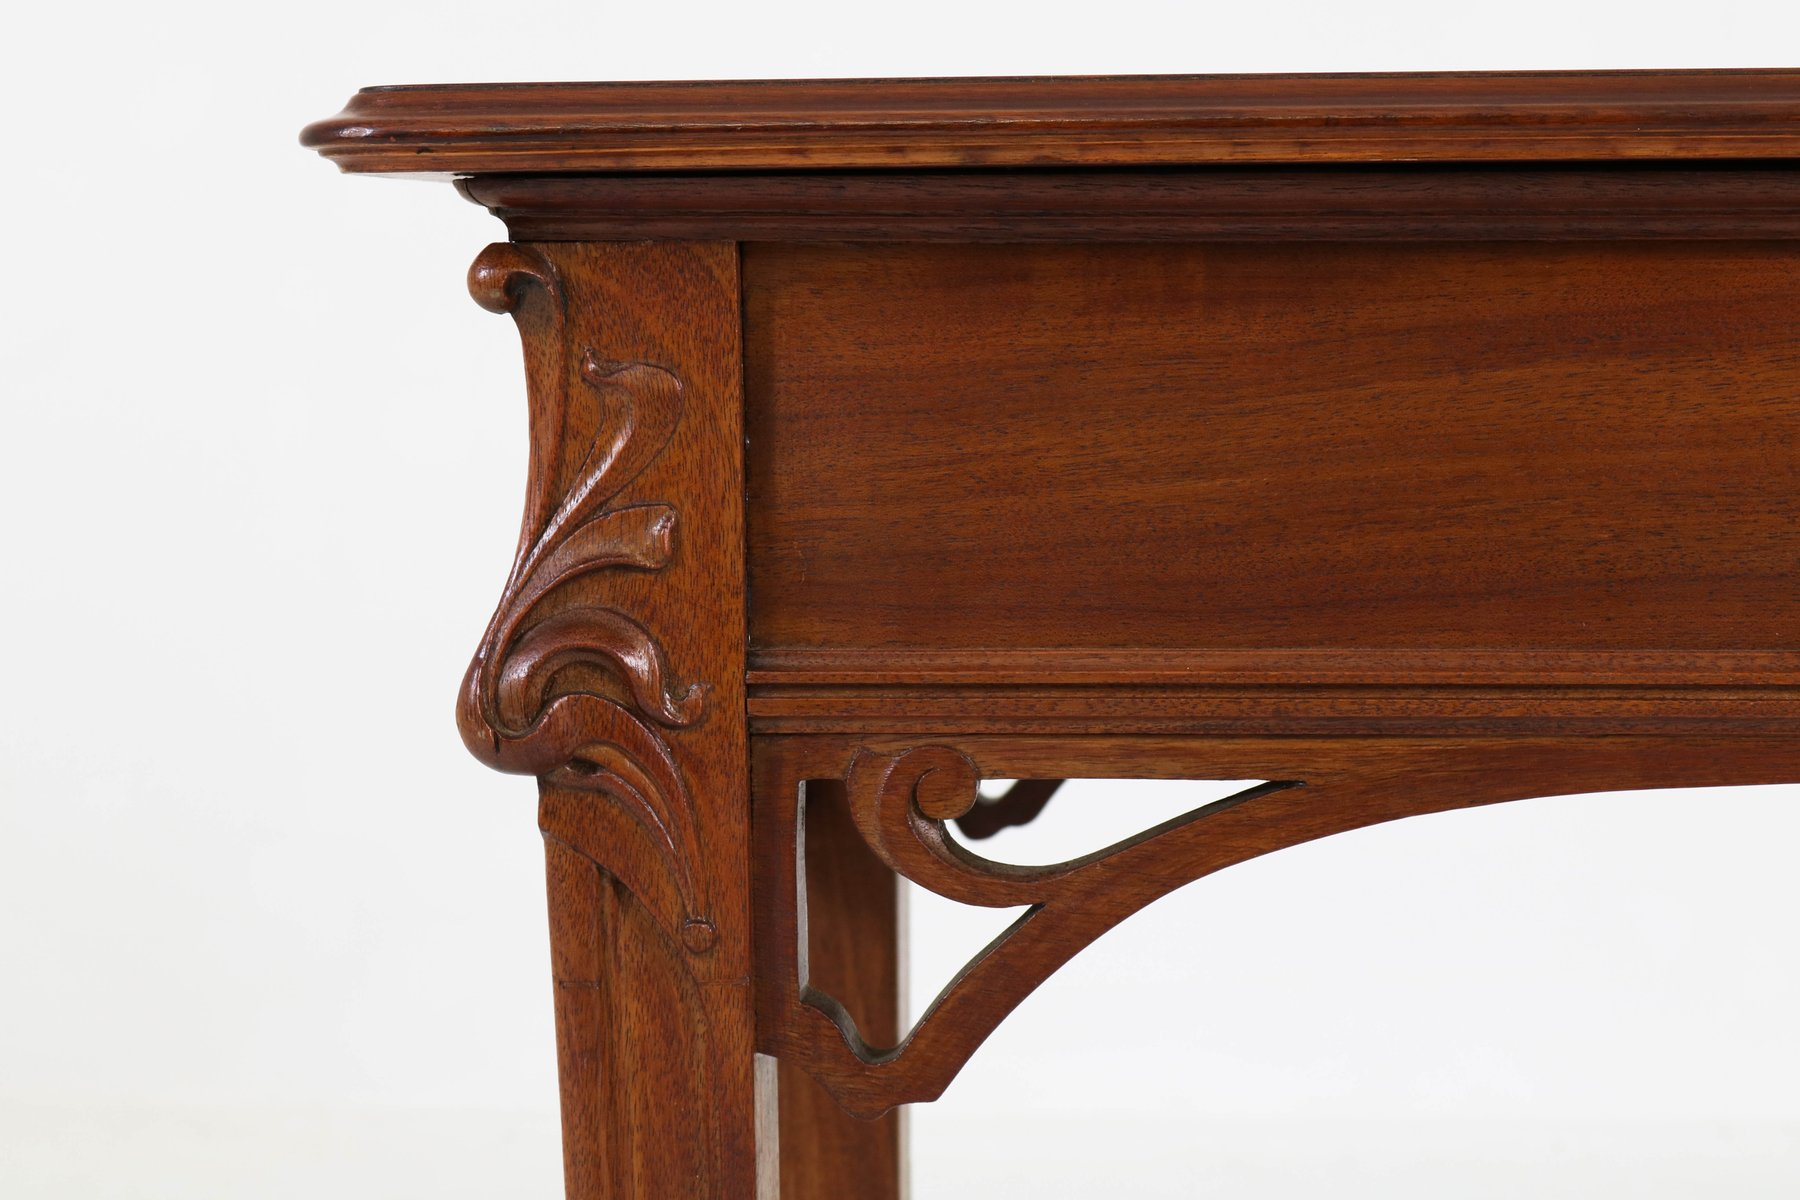 french art nouveau mahogany console table 1900s for sale at pamono. Black Bedroom Furniture Sets. Home Design Ideas